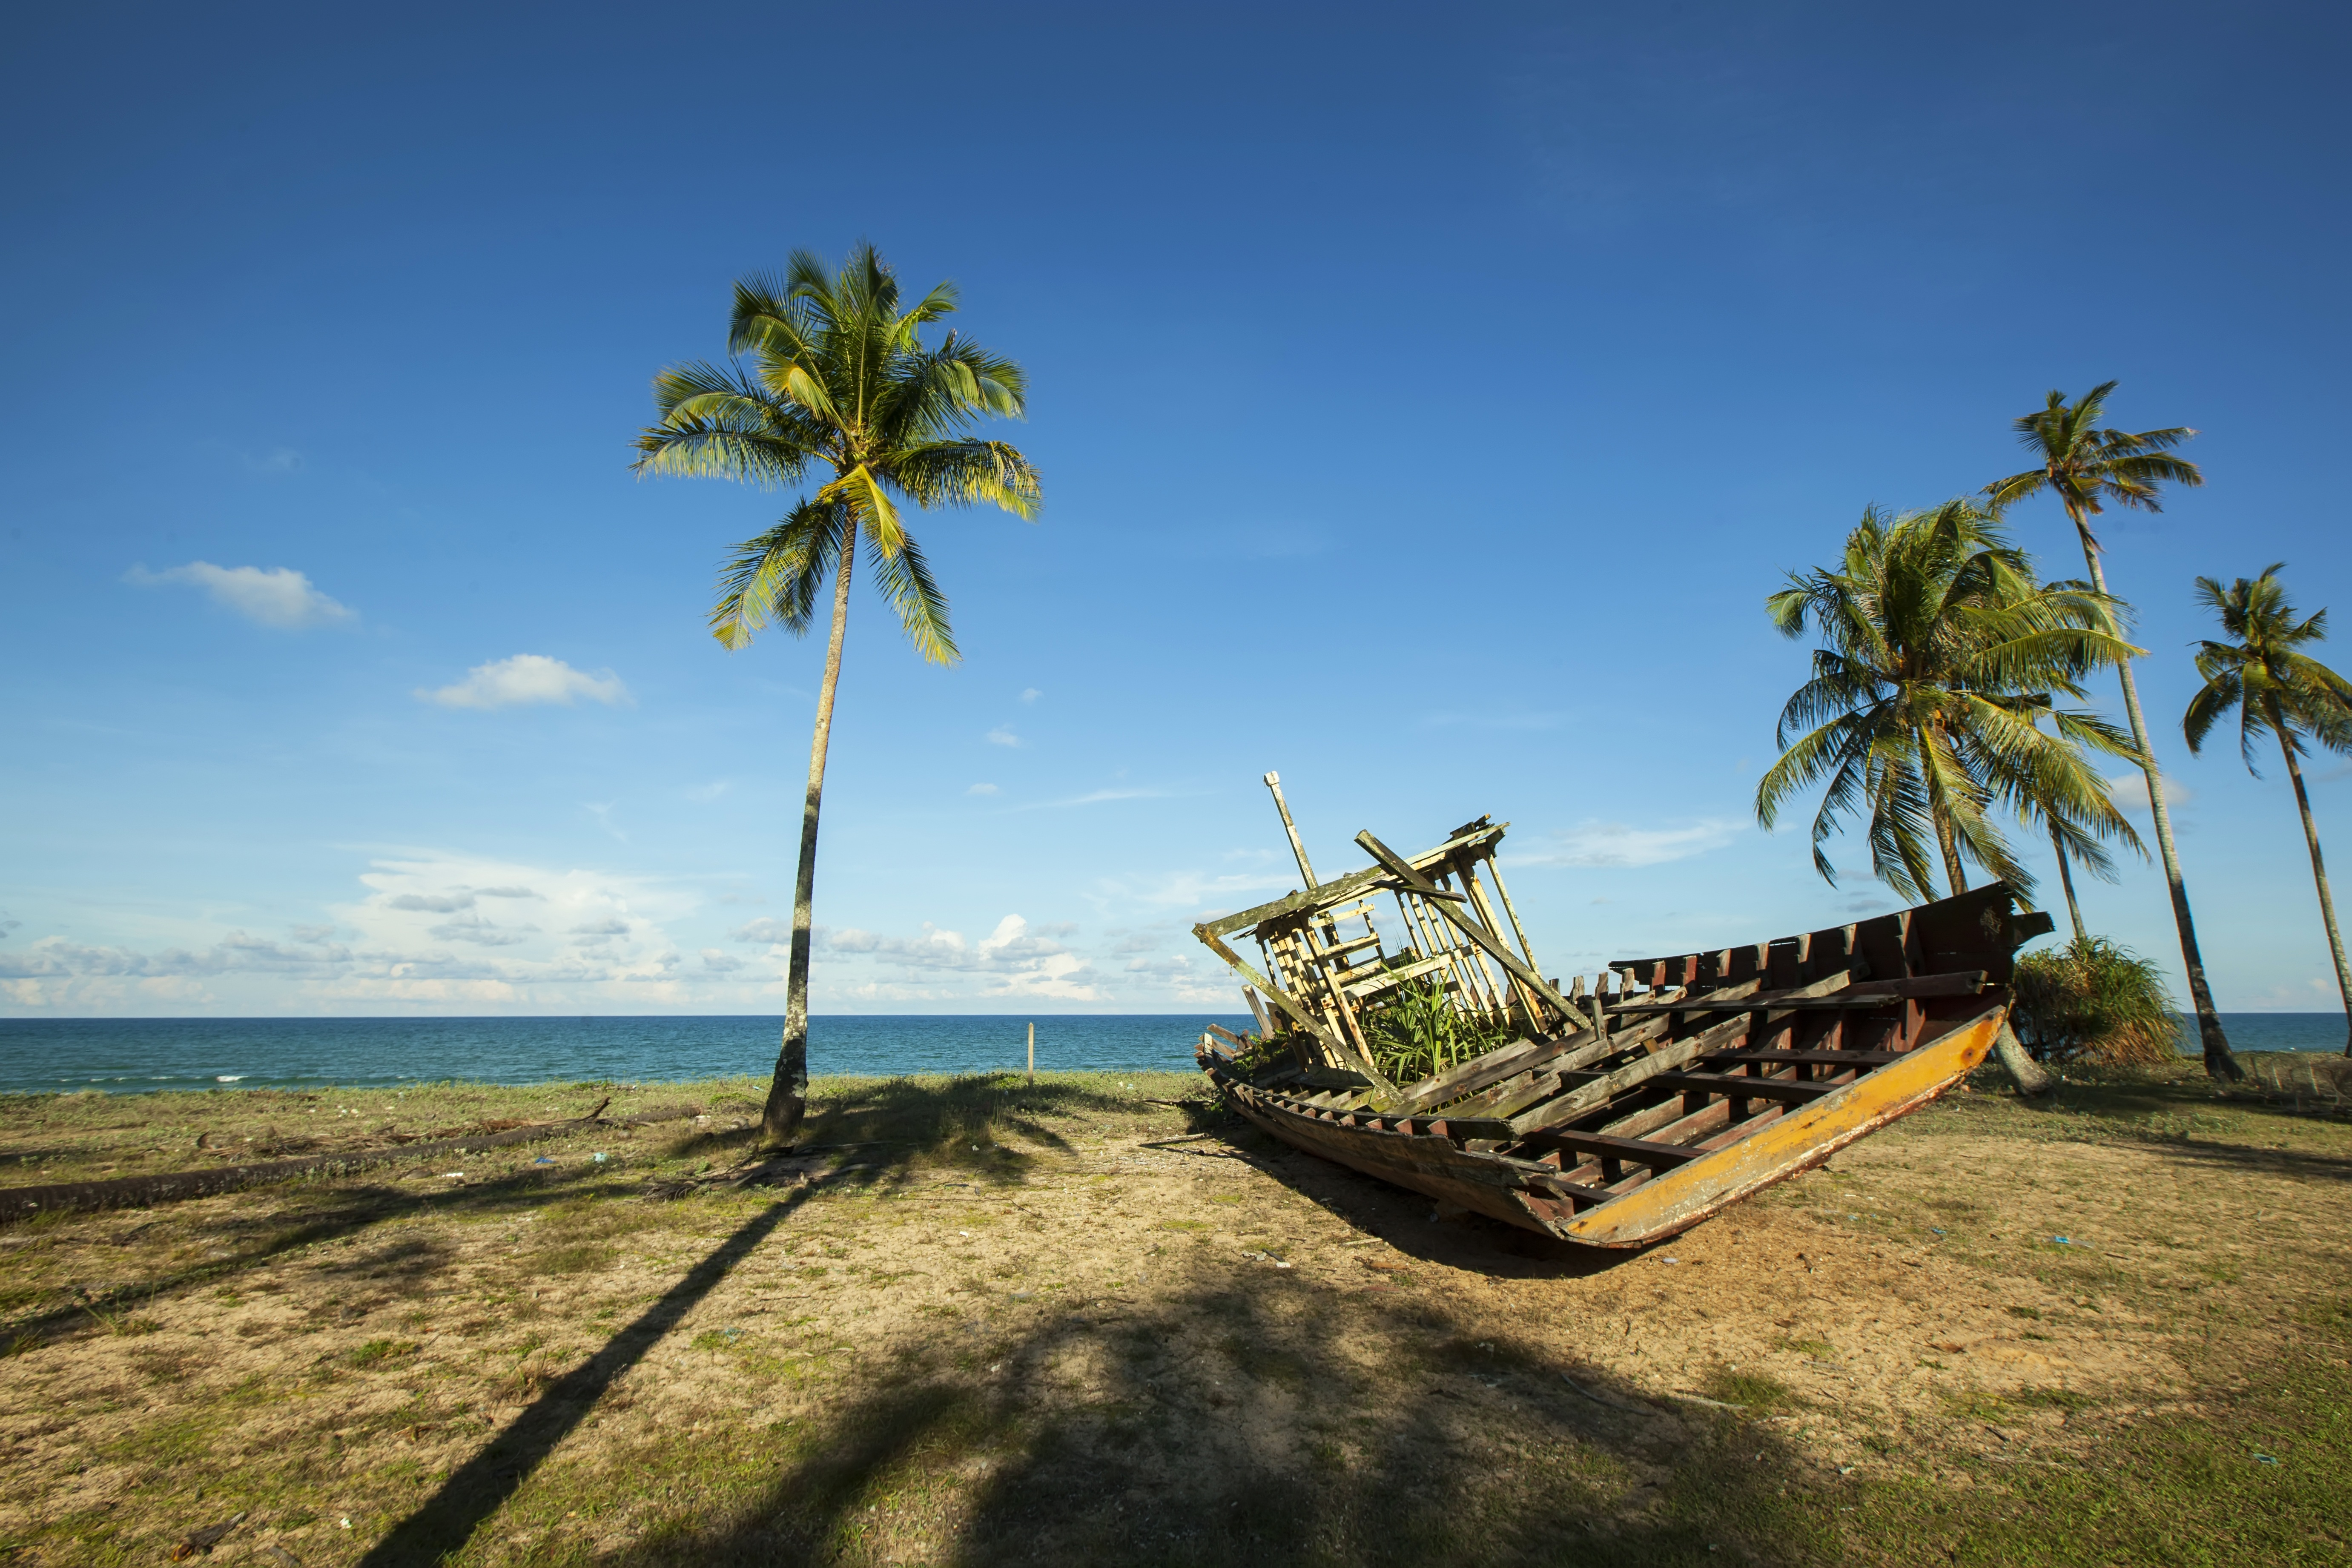 Old Boat on the Beach, Beach, Boat, Broken, Old, HQ Photo